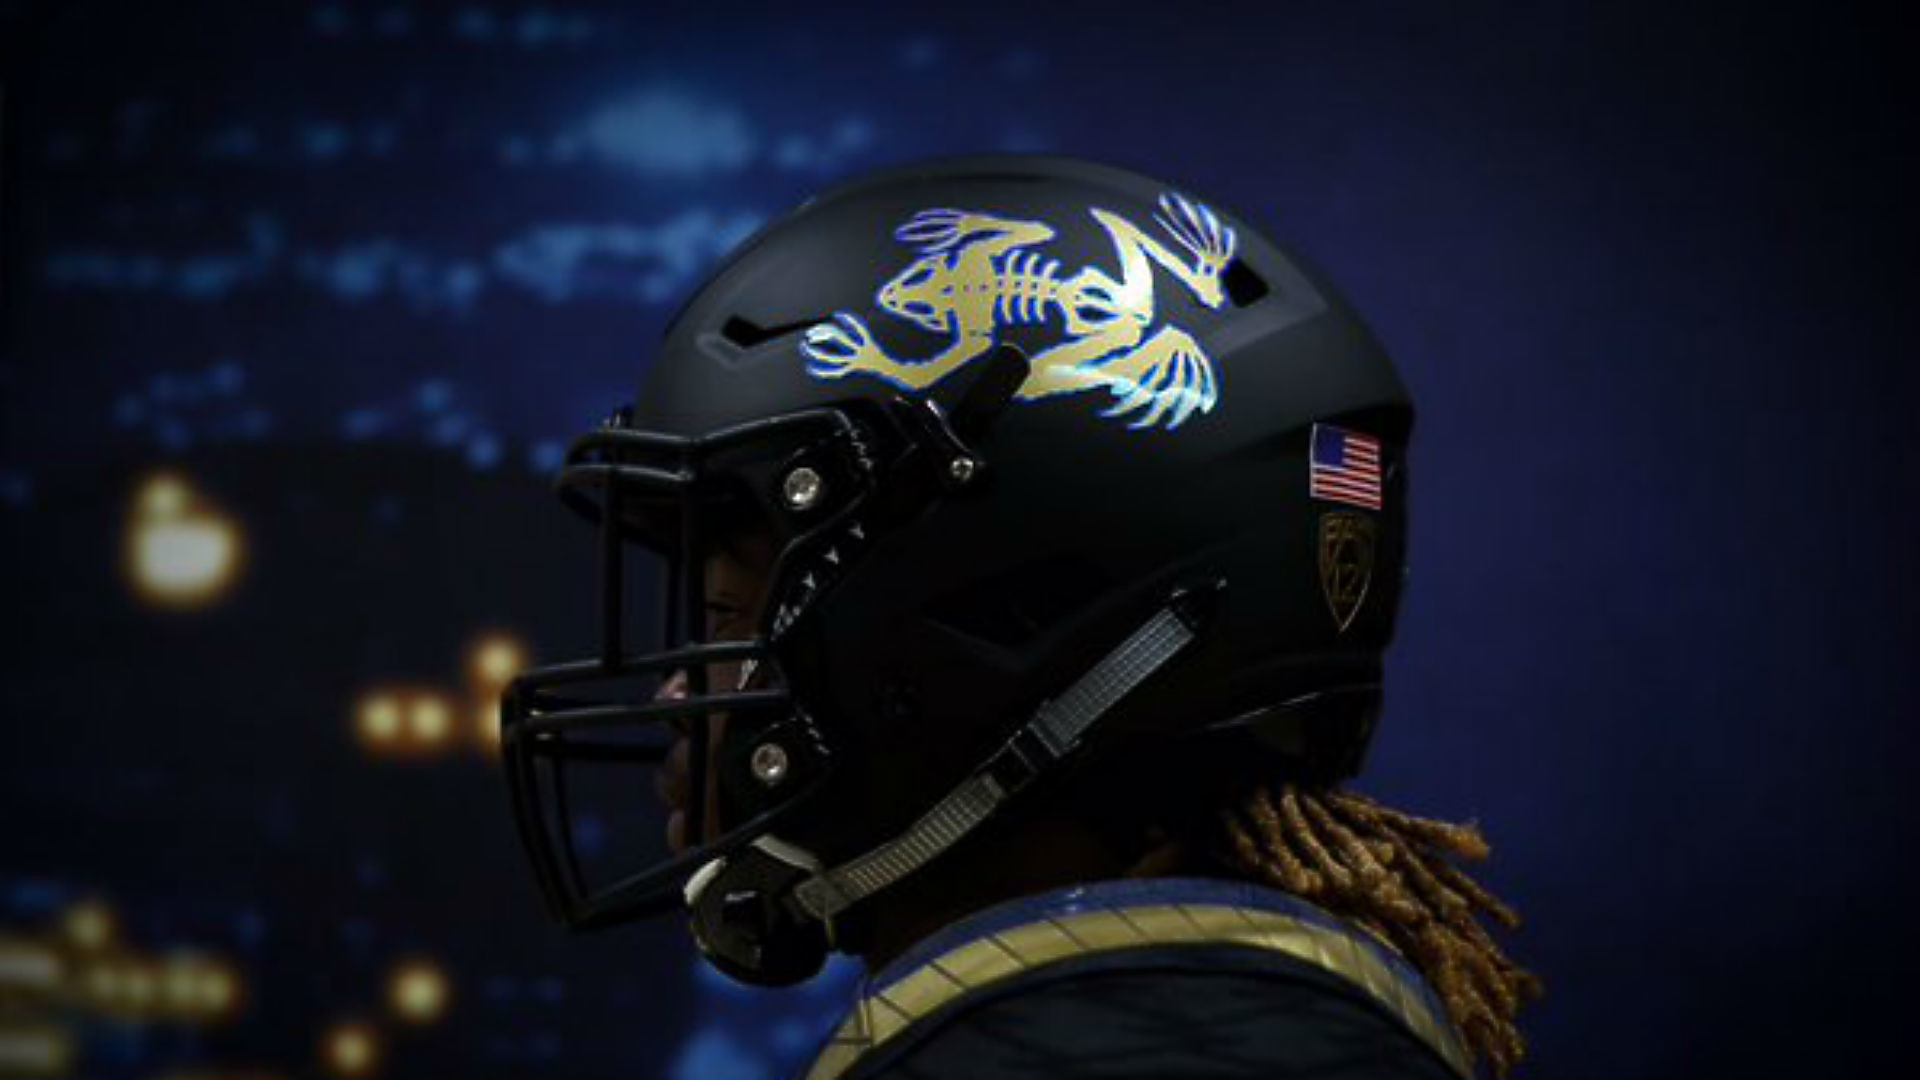 1920x1080 UCLA unveils 'frogman' helmets for Saturday's game | NCAA Football |  Sporting News